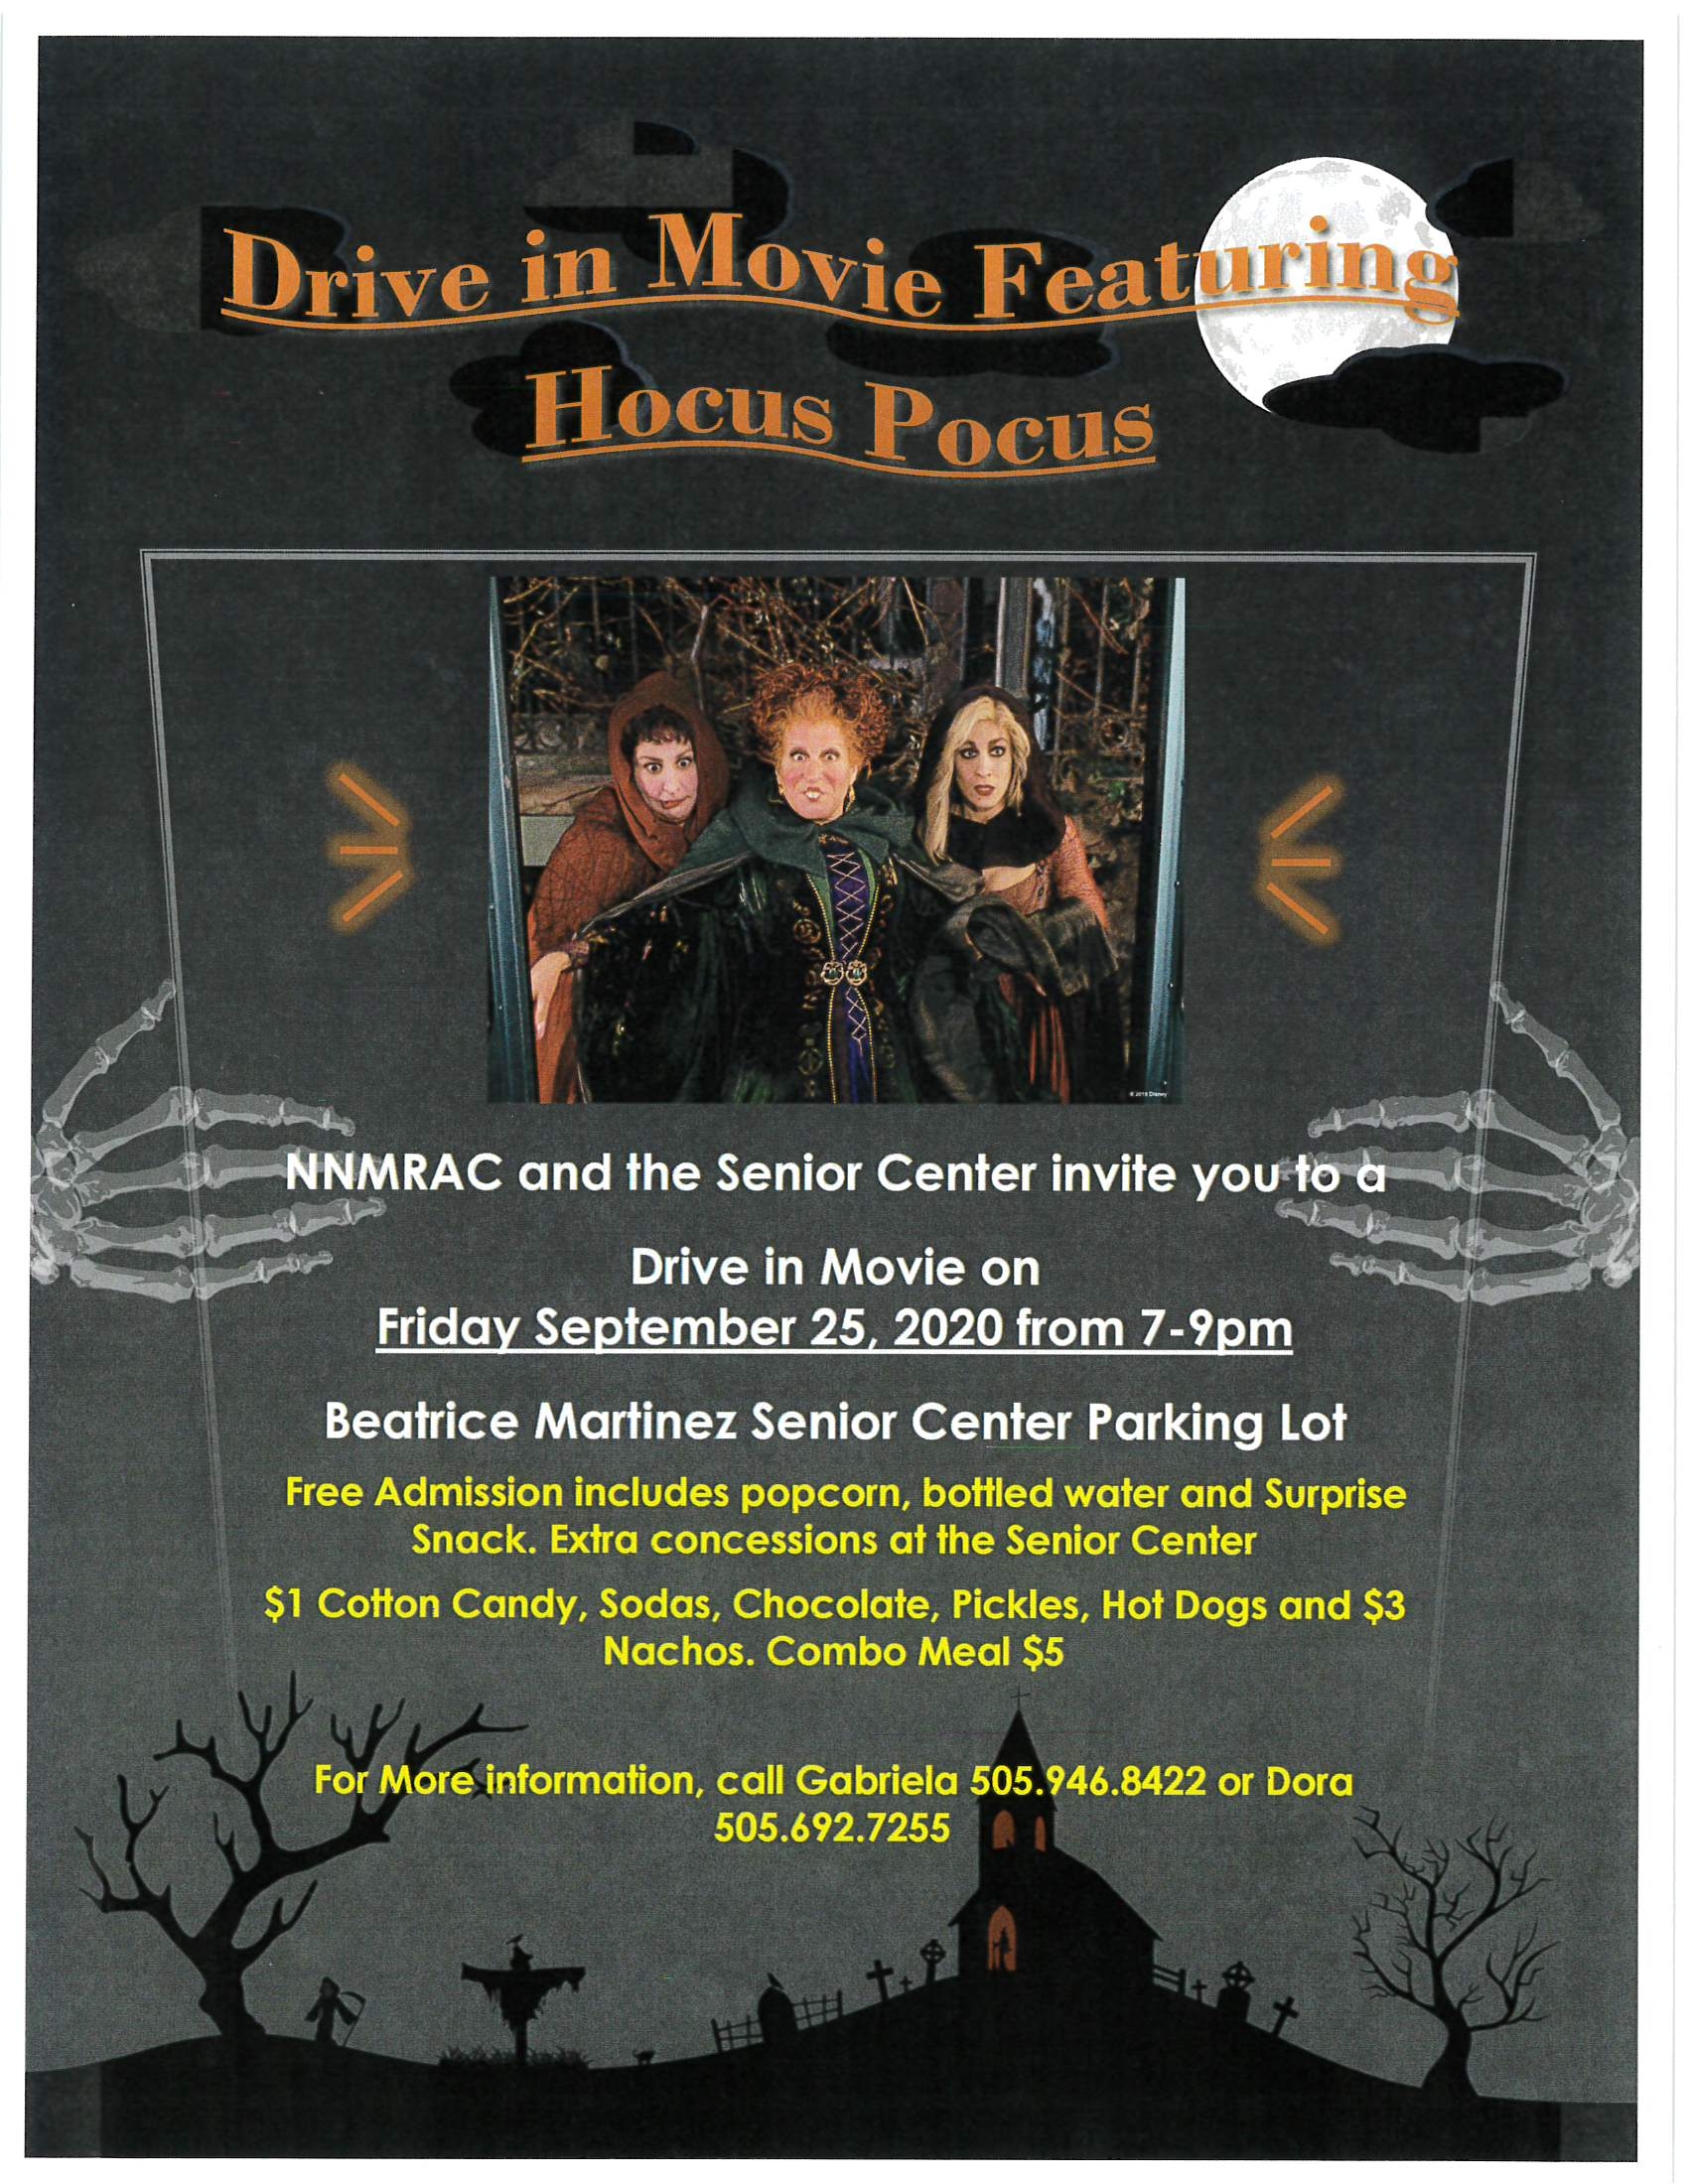 Drive in Movie Hocus Pocus